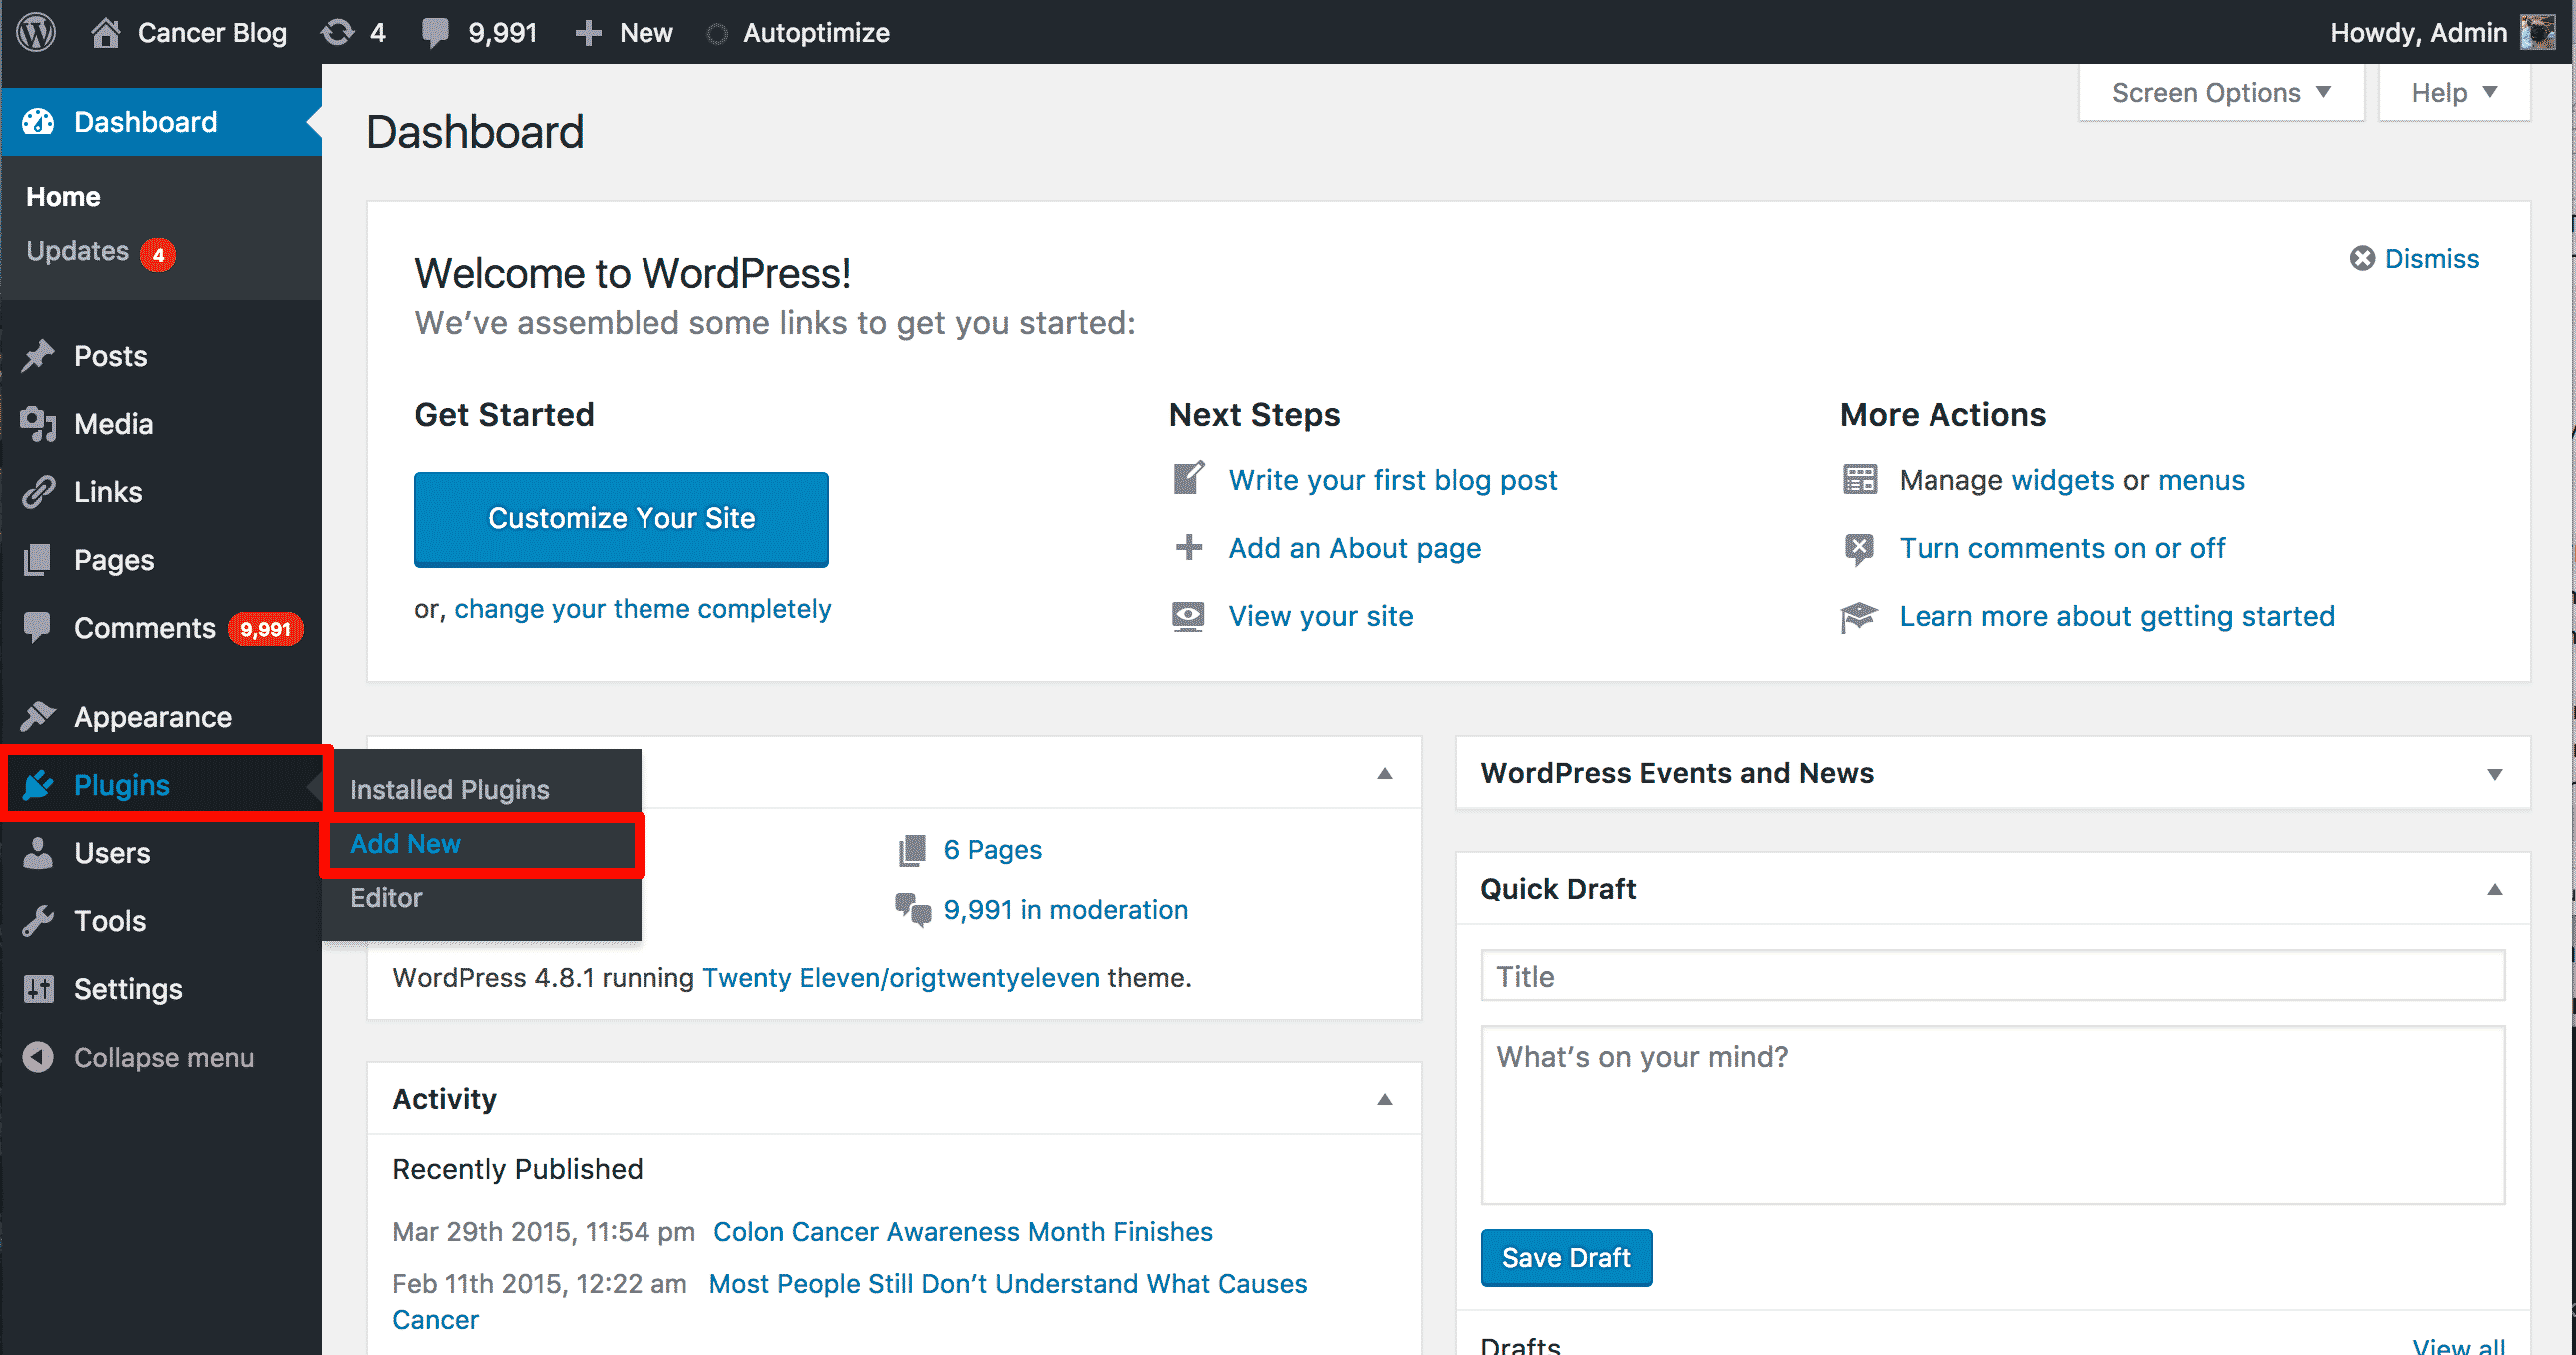 Adding a plugin in WordPress